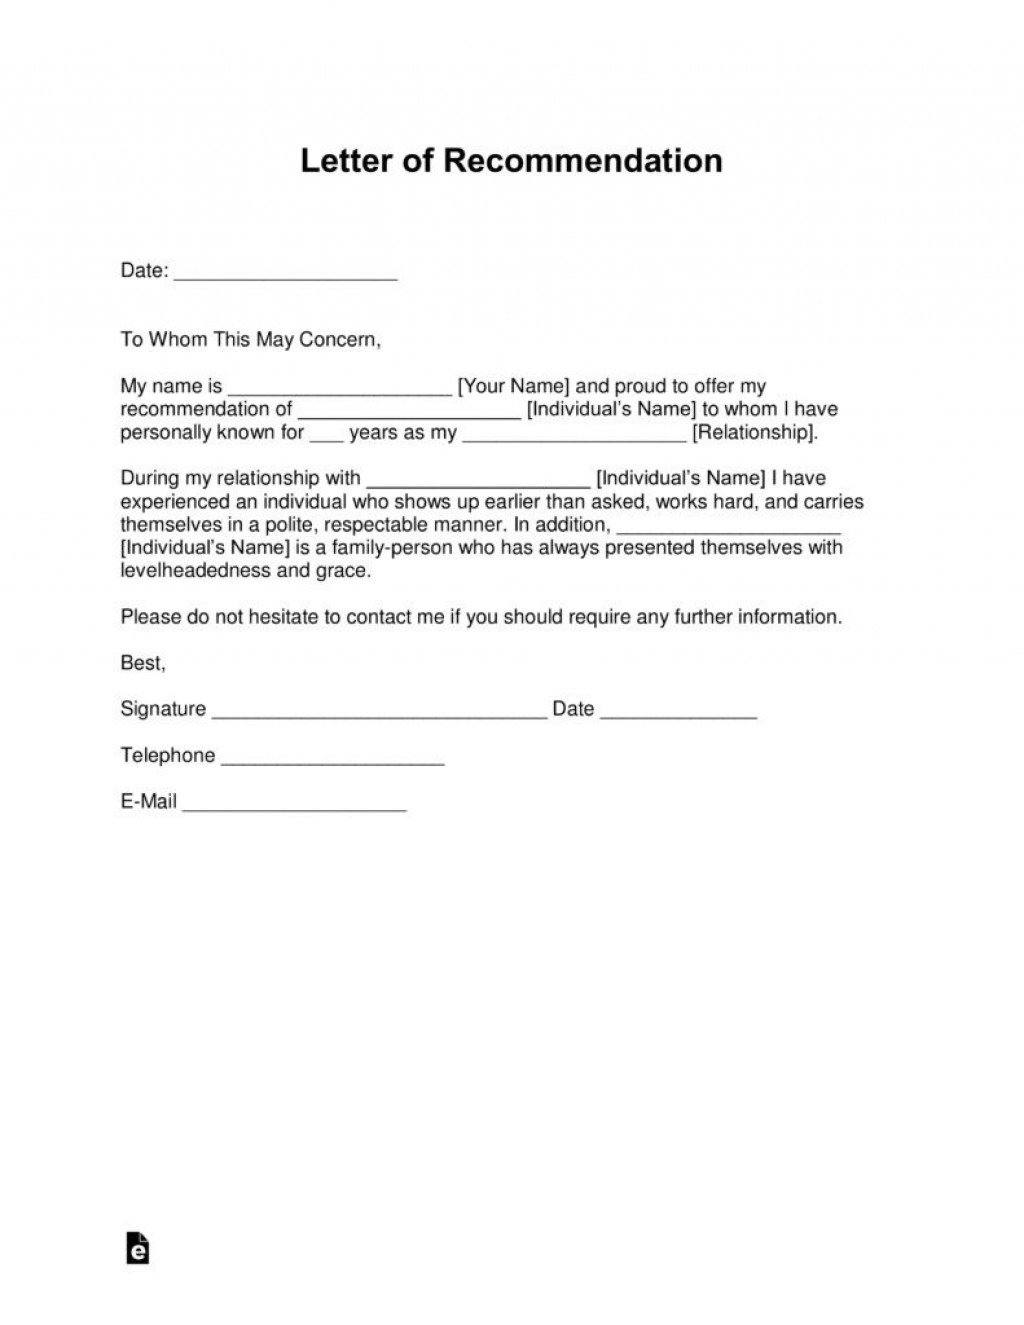 001 Top Letter Of Recommendation Template Word High Definition  General Free DocLarge